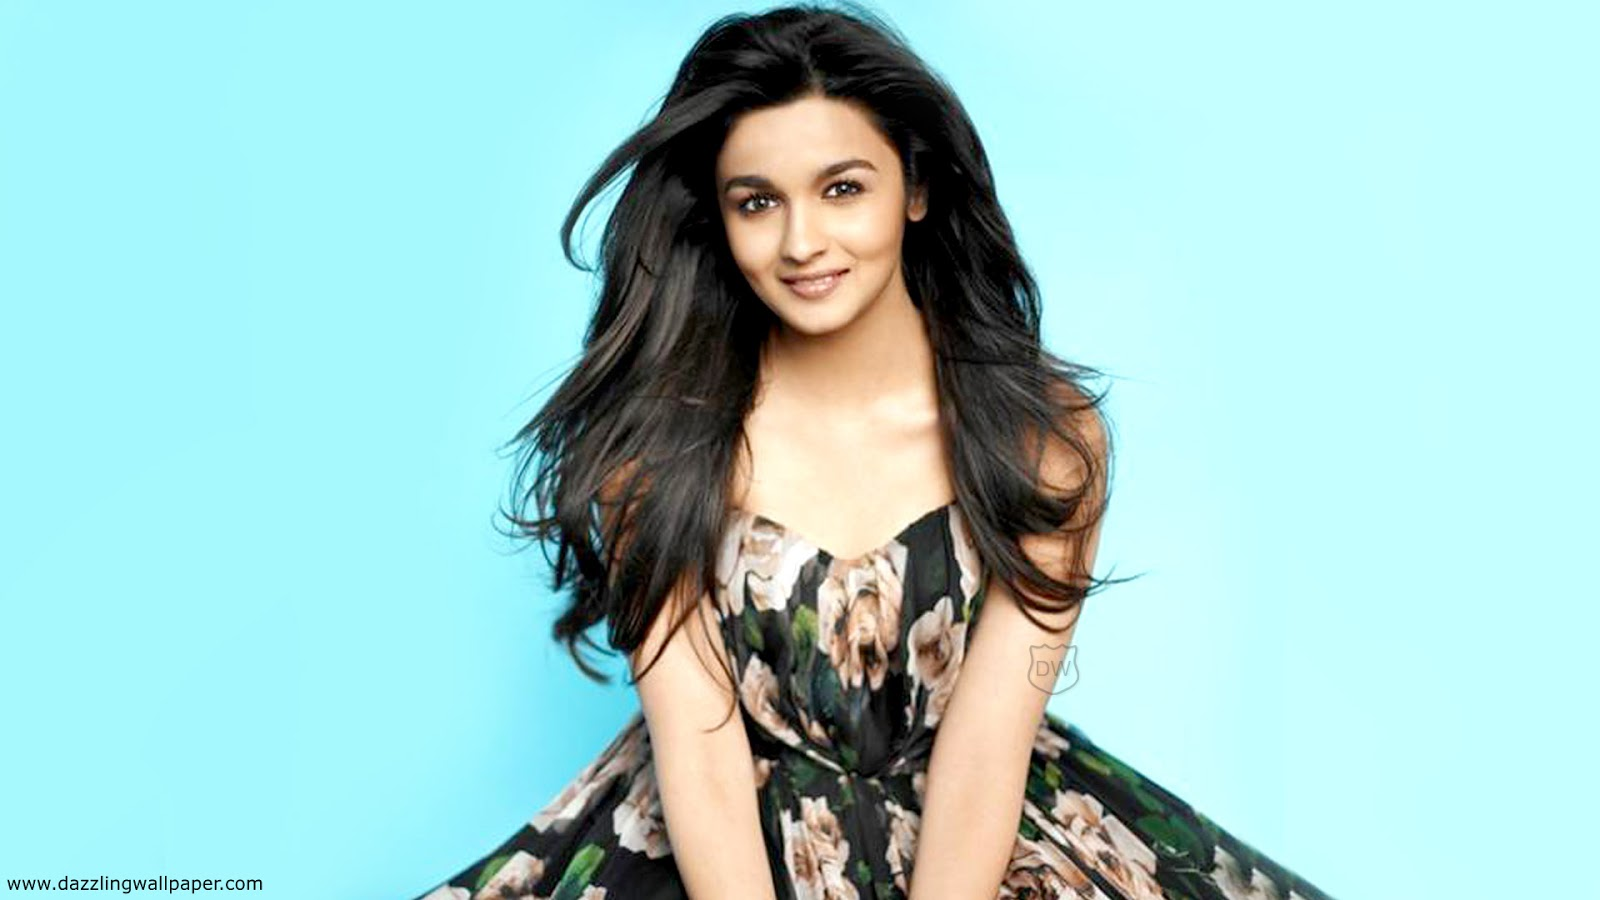 Alia Bhatt Bollywood Actress Hot and Sexy Wallpapers ~ Super HD Wallpaperss